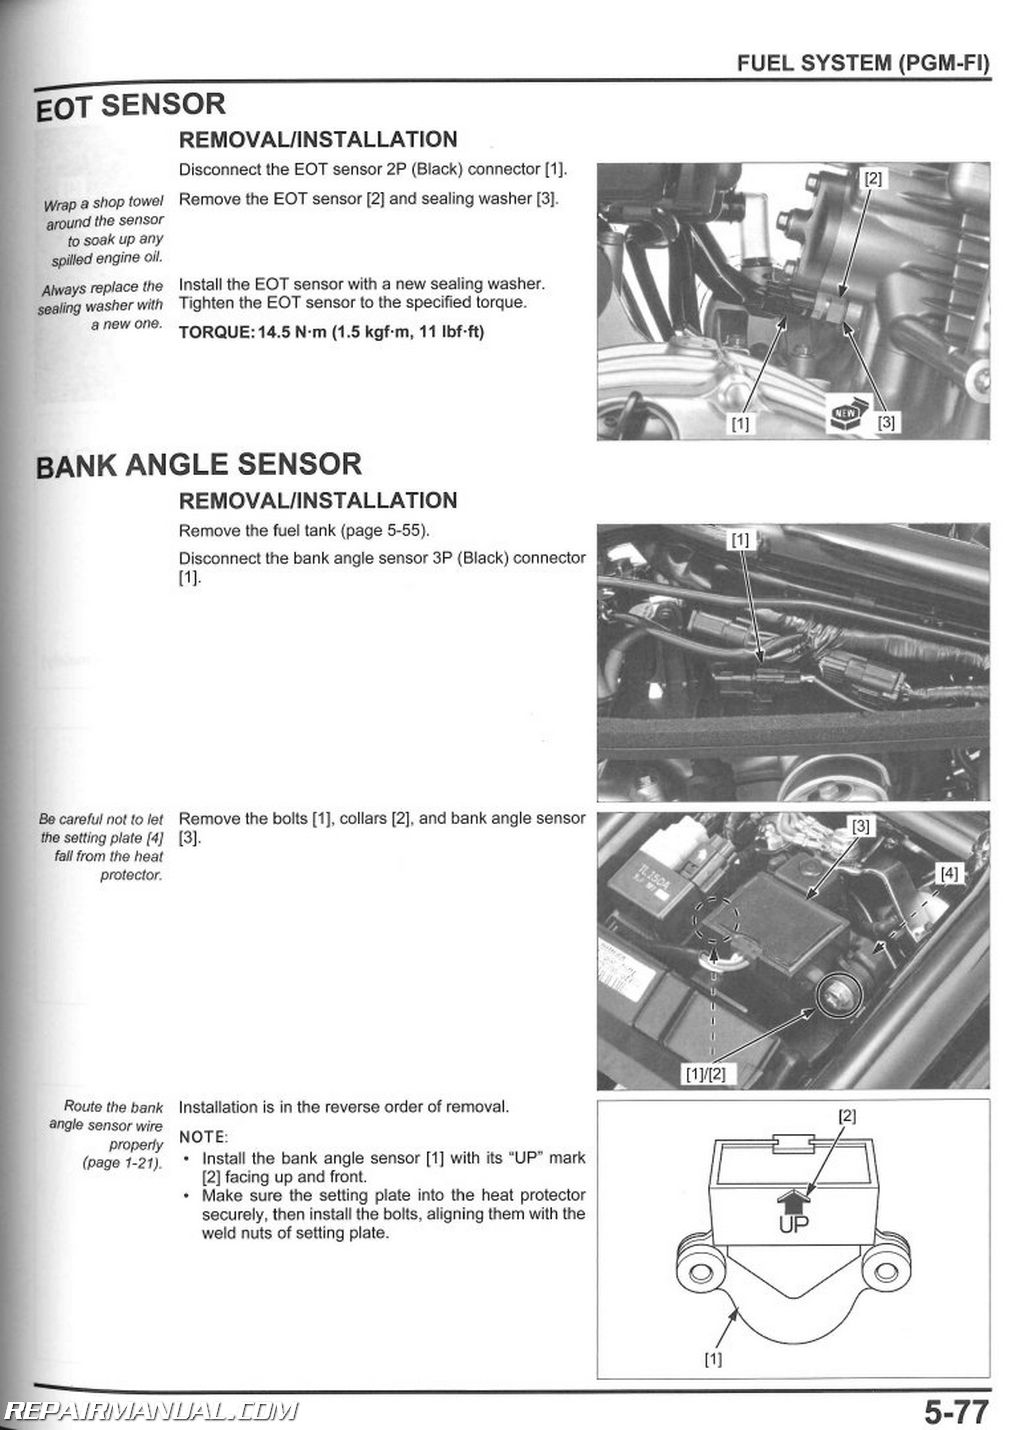 2013 2014 honda cb1100 a motorcycle service manual repair 2013 2014 honda cb1100 a service manual page 2